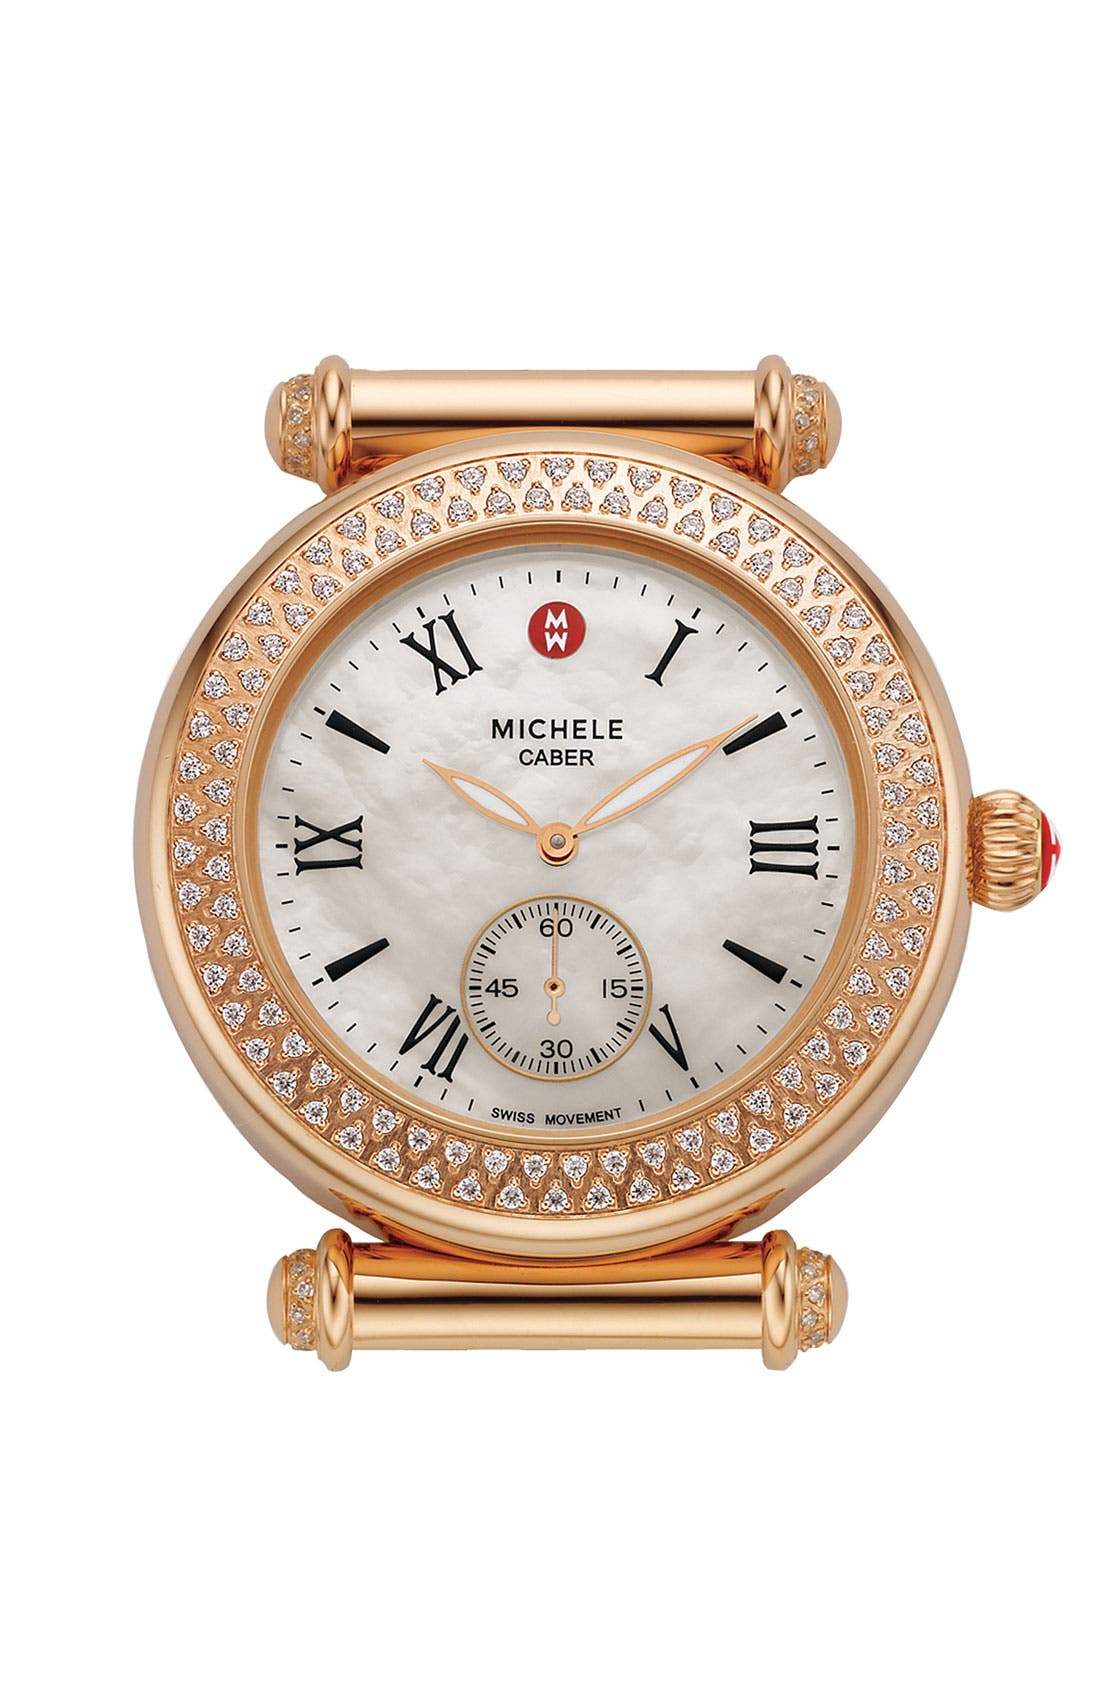 Main Image - MICHELE 'Caber' Diamond Rose Gold Watch Case, 38mm